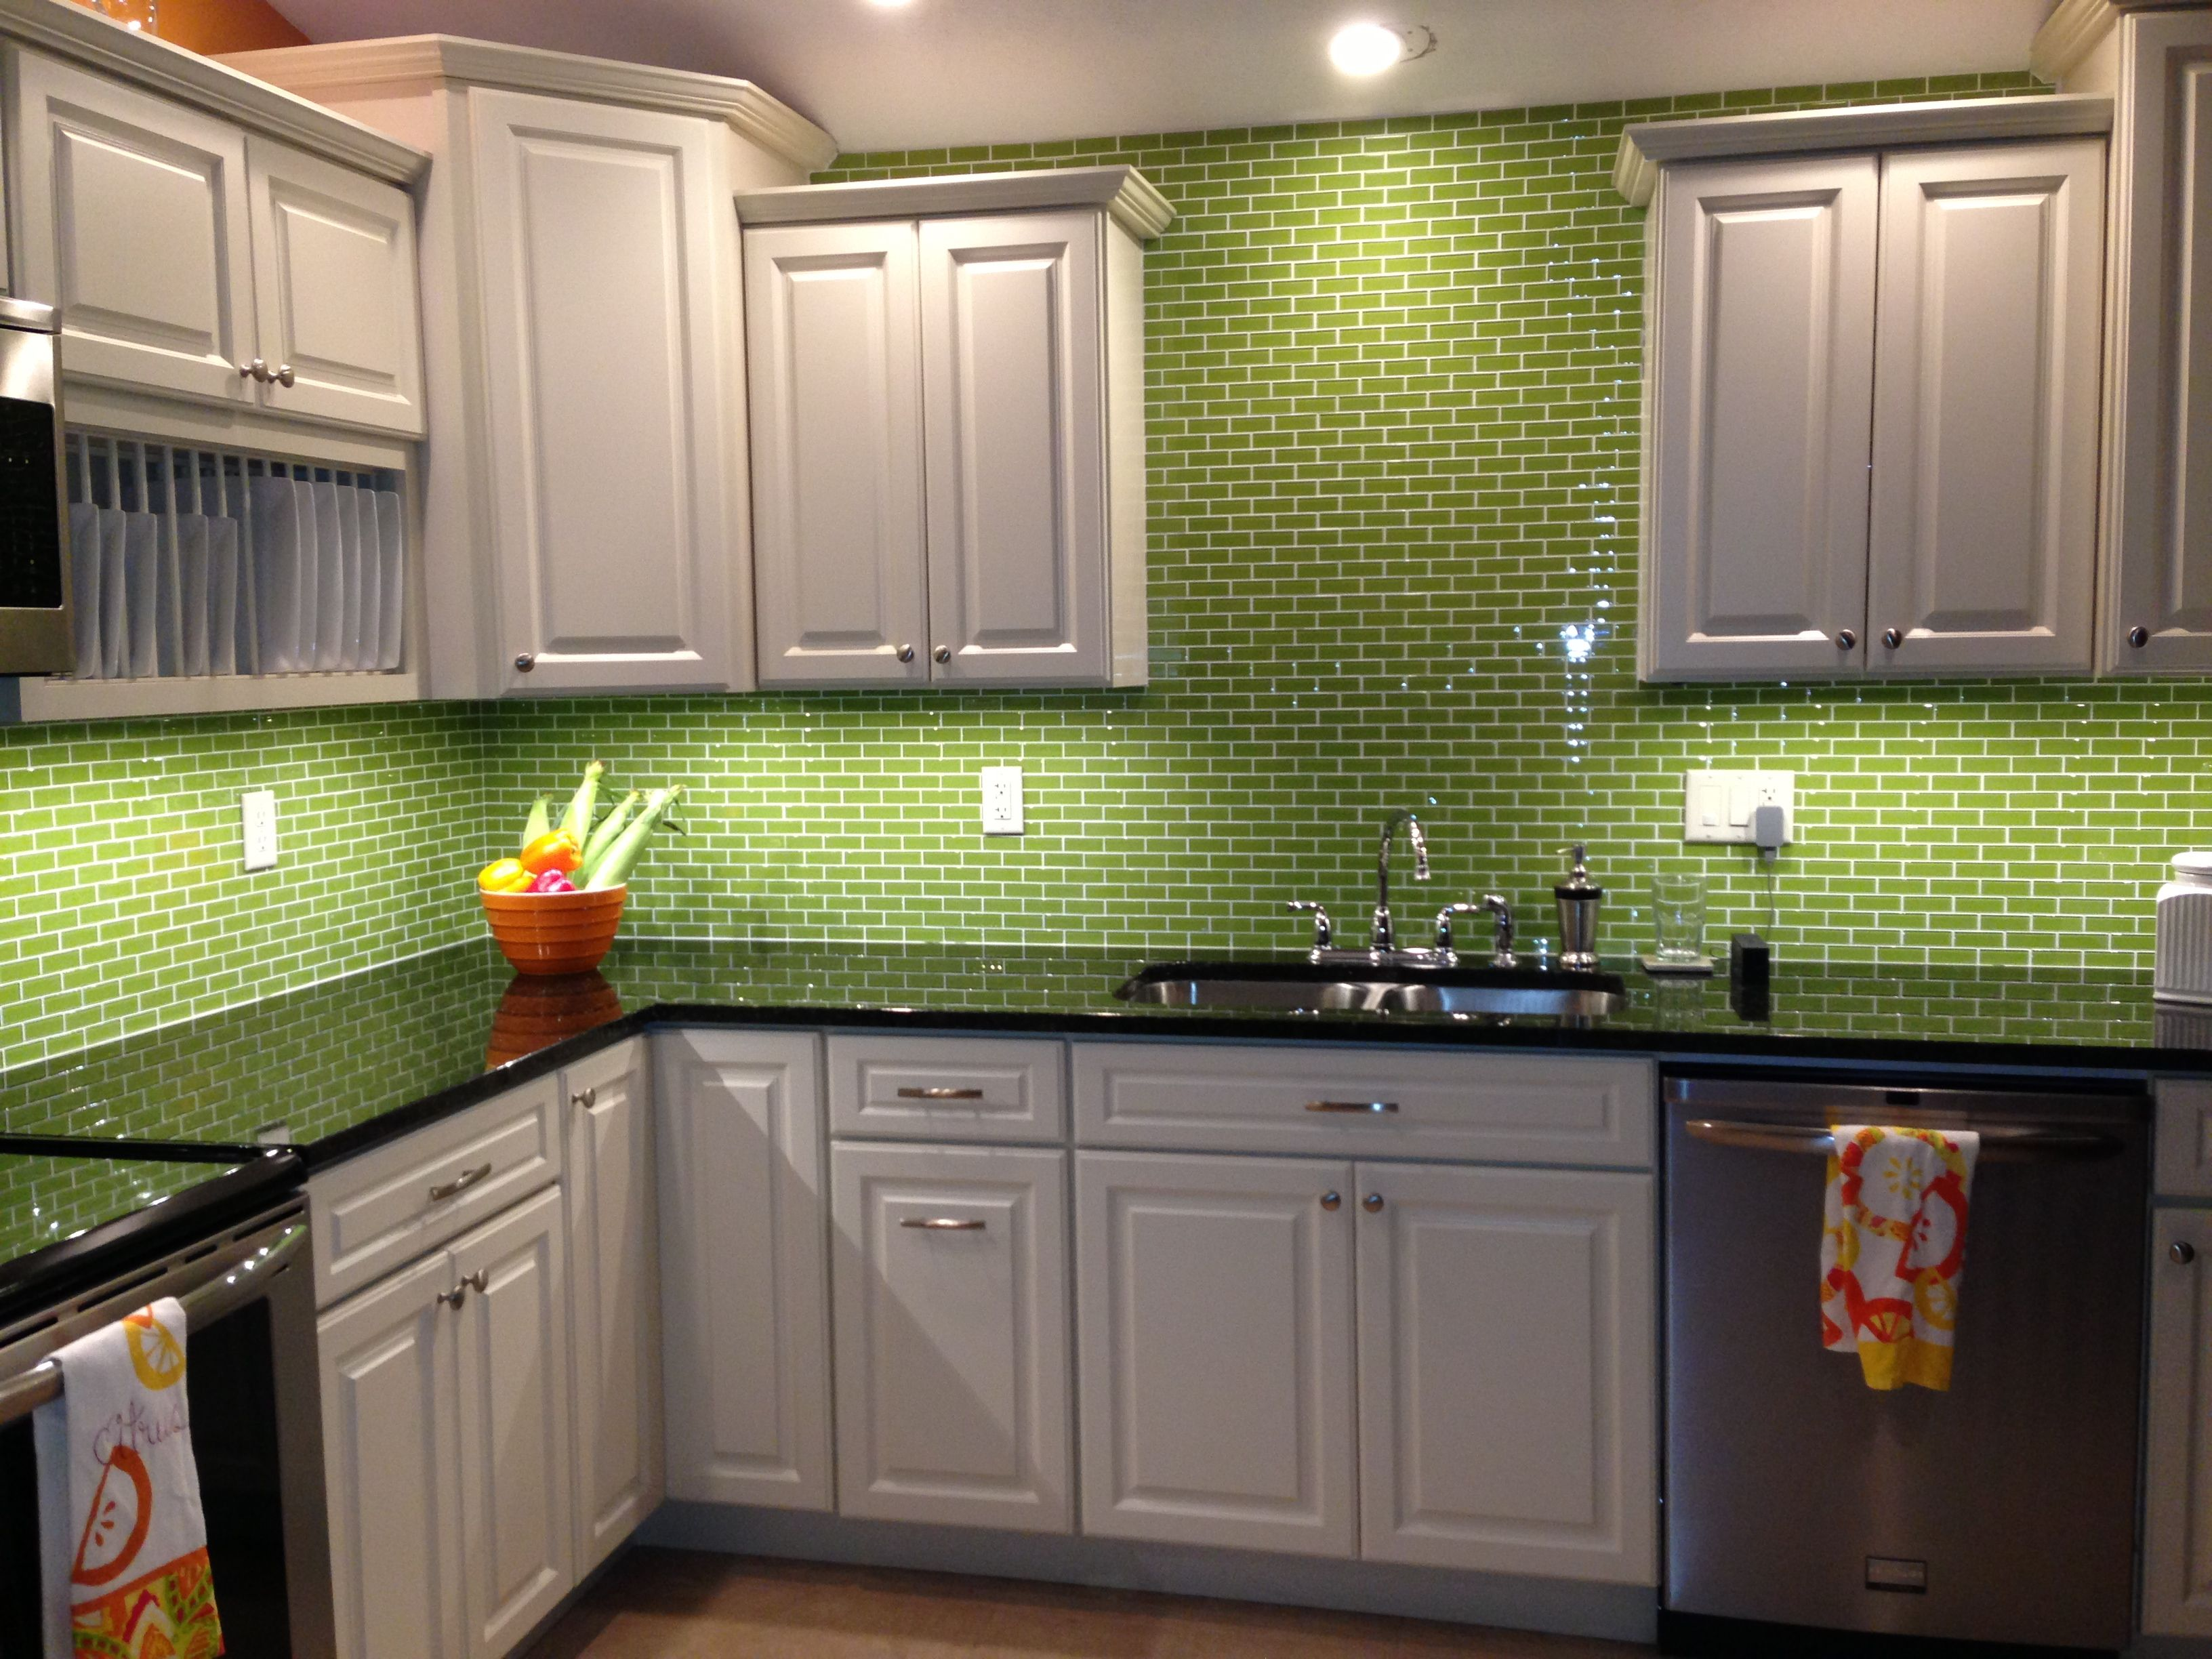 lime green glass subway tile backsplash kitchen kitchen ideas lime green glass subway tile backsplash kitchen